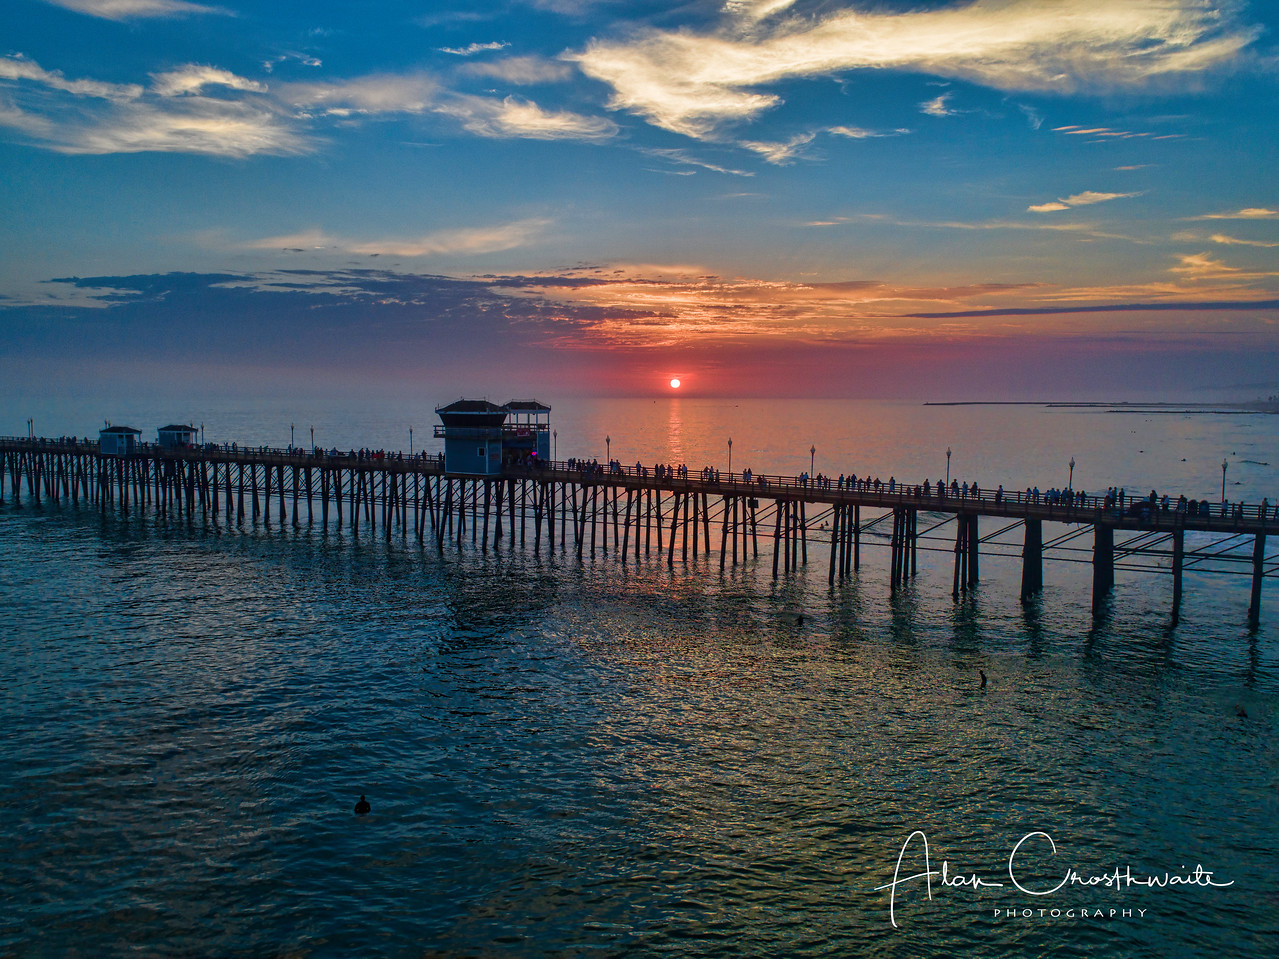 Sunset's glow at the pier